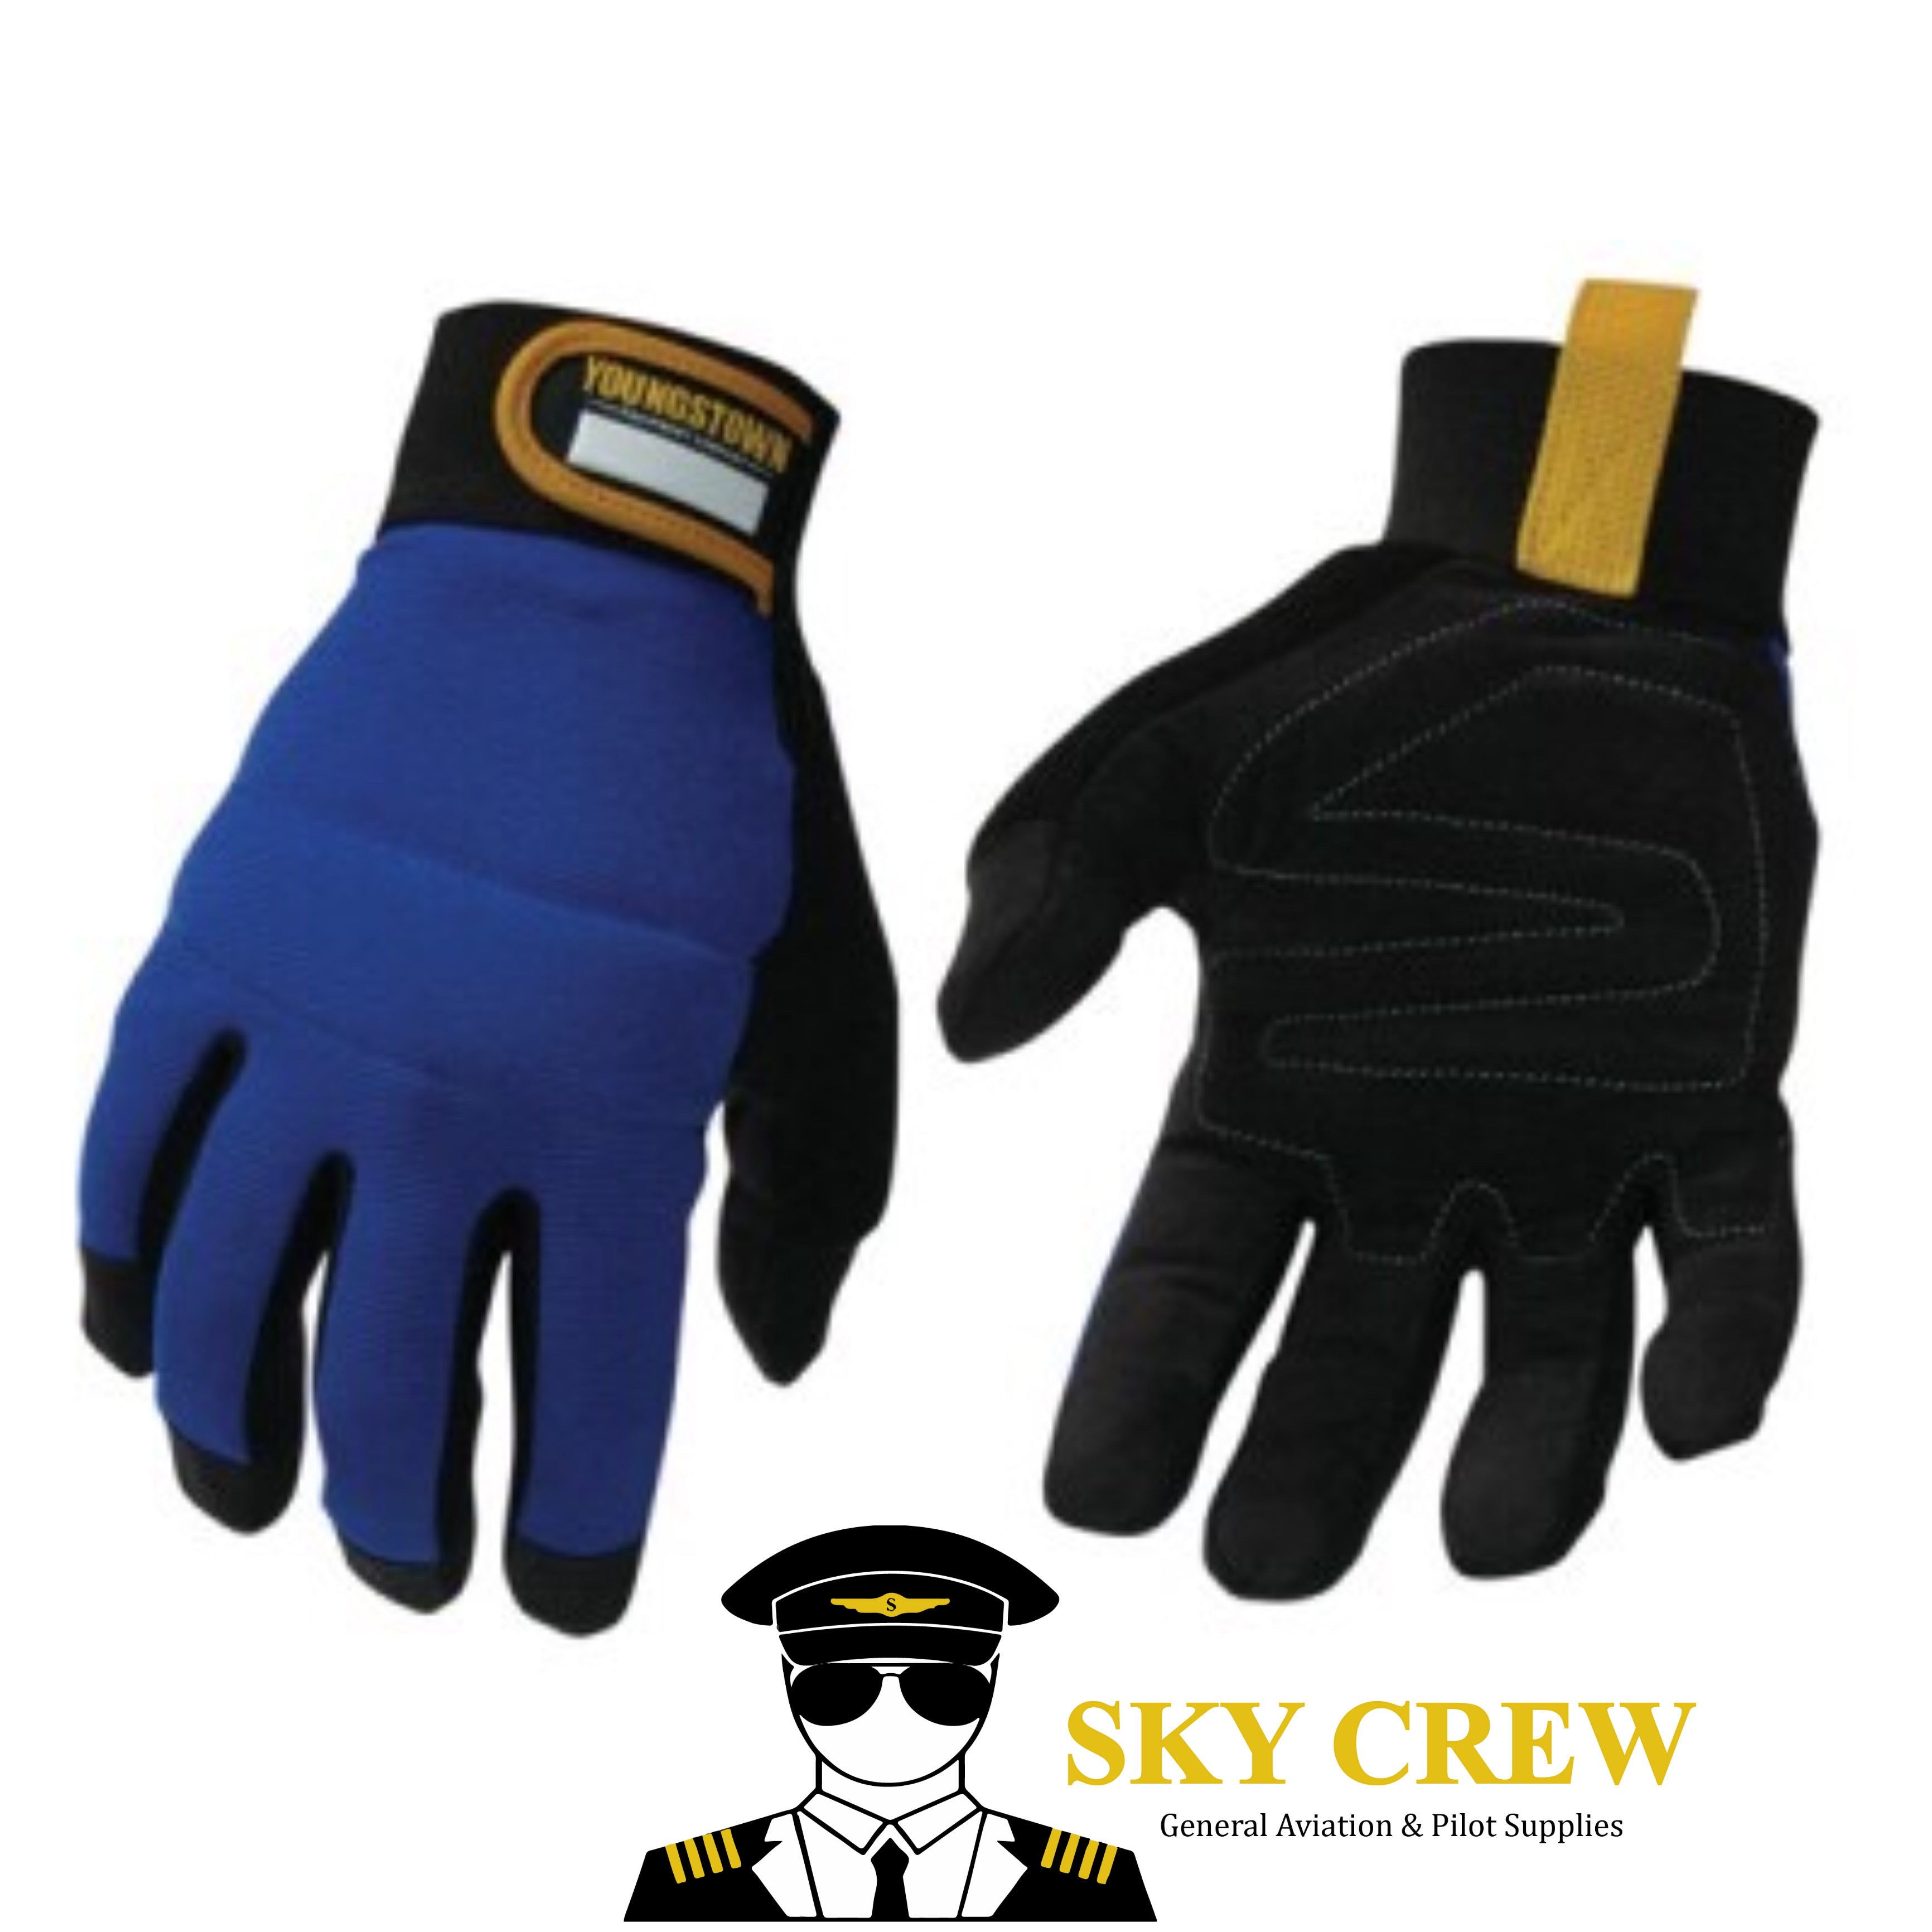 MECHANICS PLUS GLOVES - Sky Crew PTY